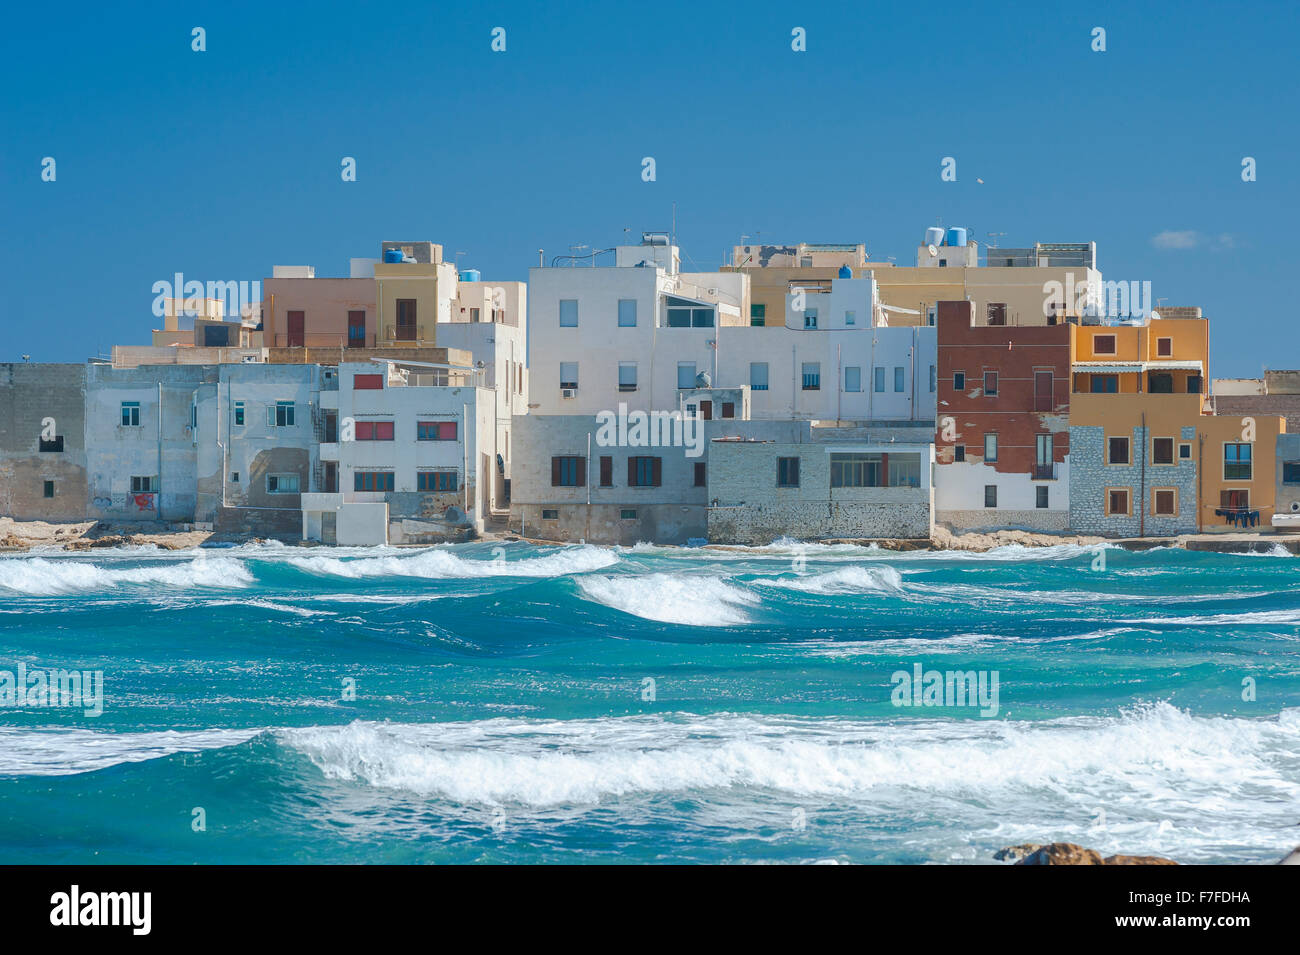 Sicily coast, waves break against the west coast of the town of Trapani, Sicily. - Stock Image